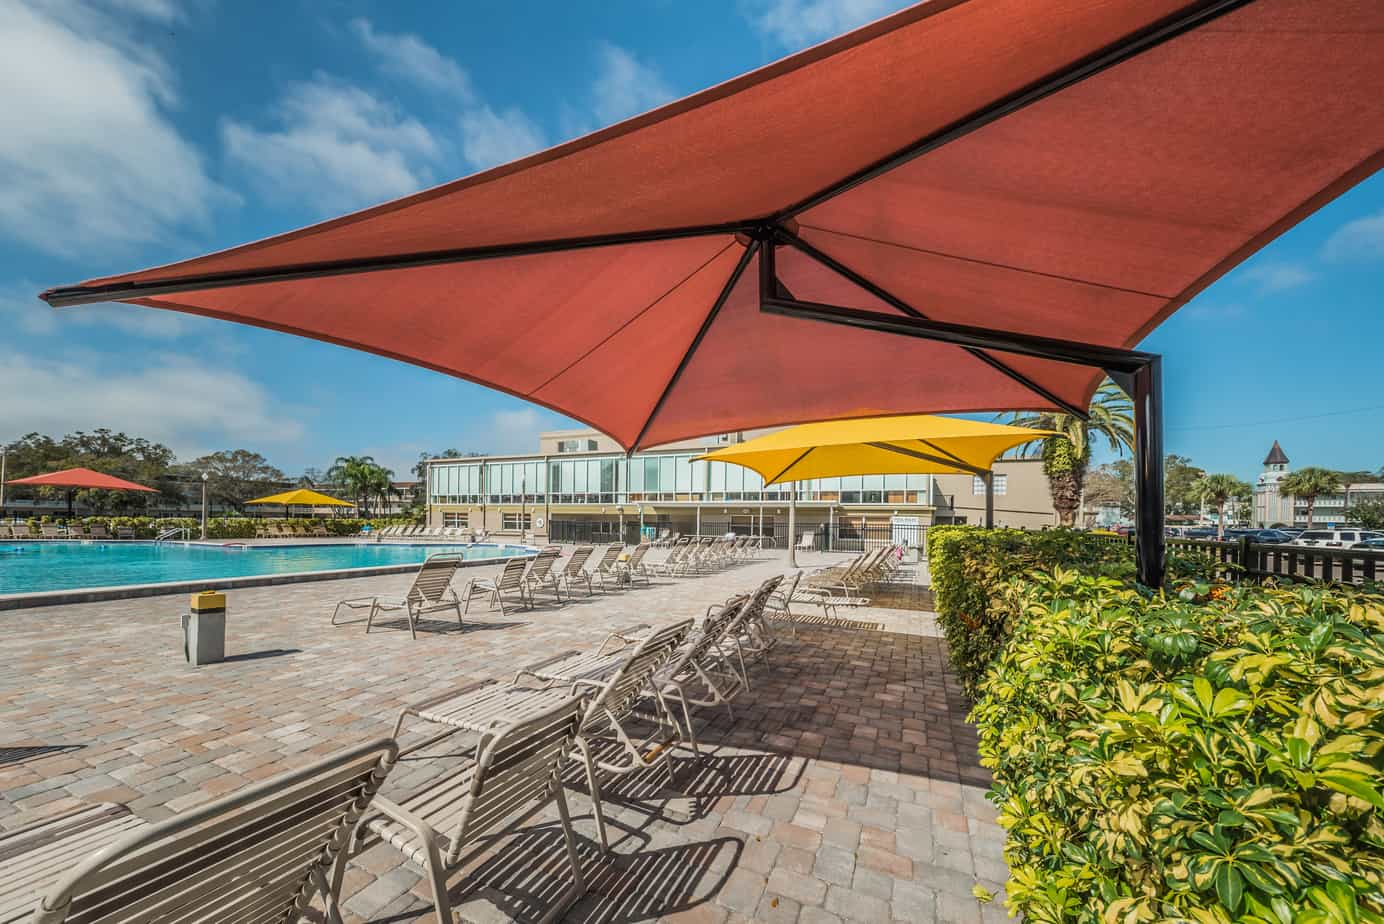 30-2285-Israeli-Dr-#17-Clearwater-Fl-33763-Patio2-3